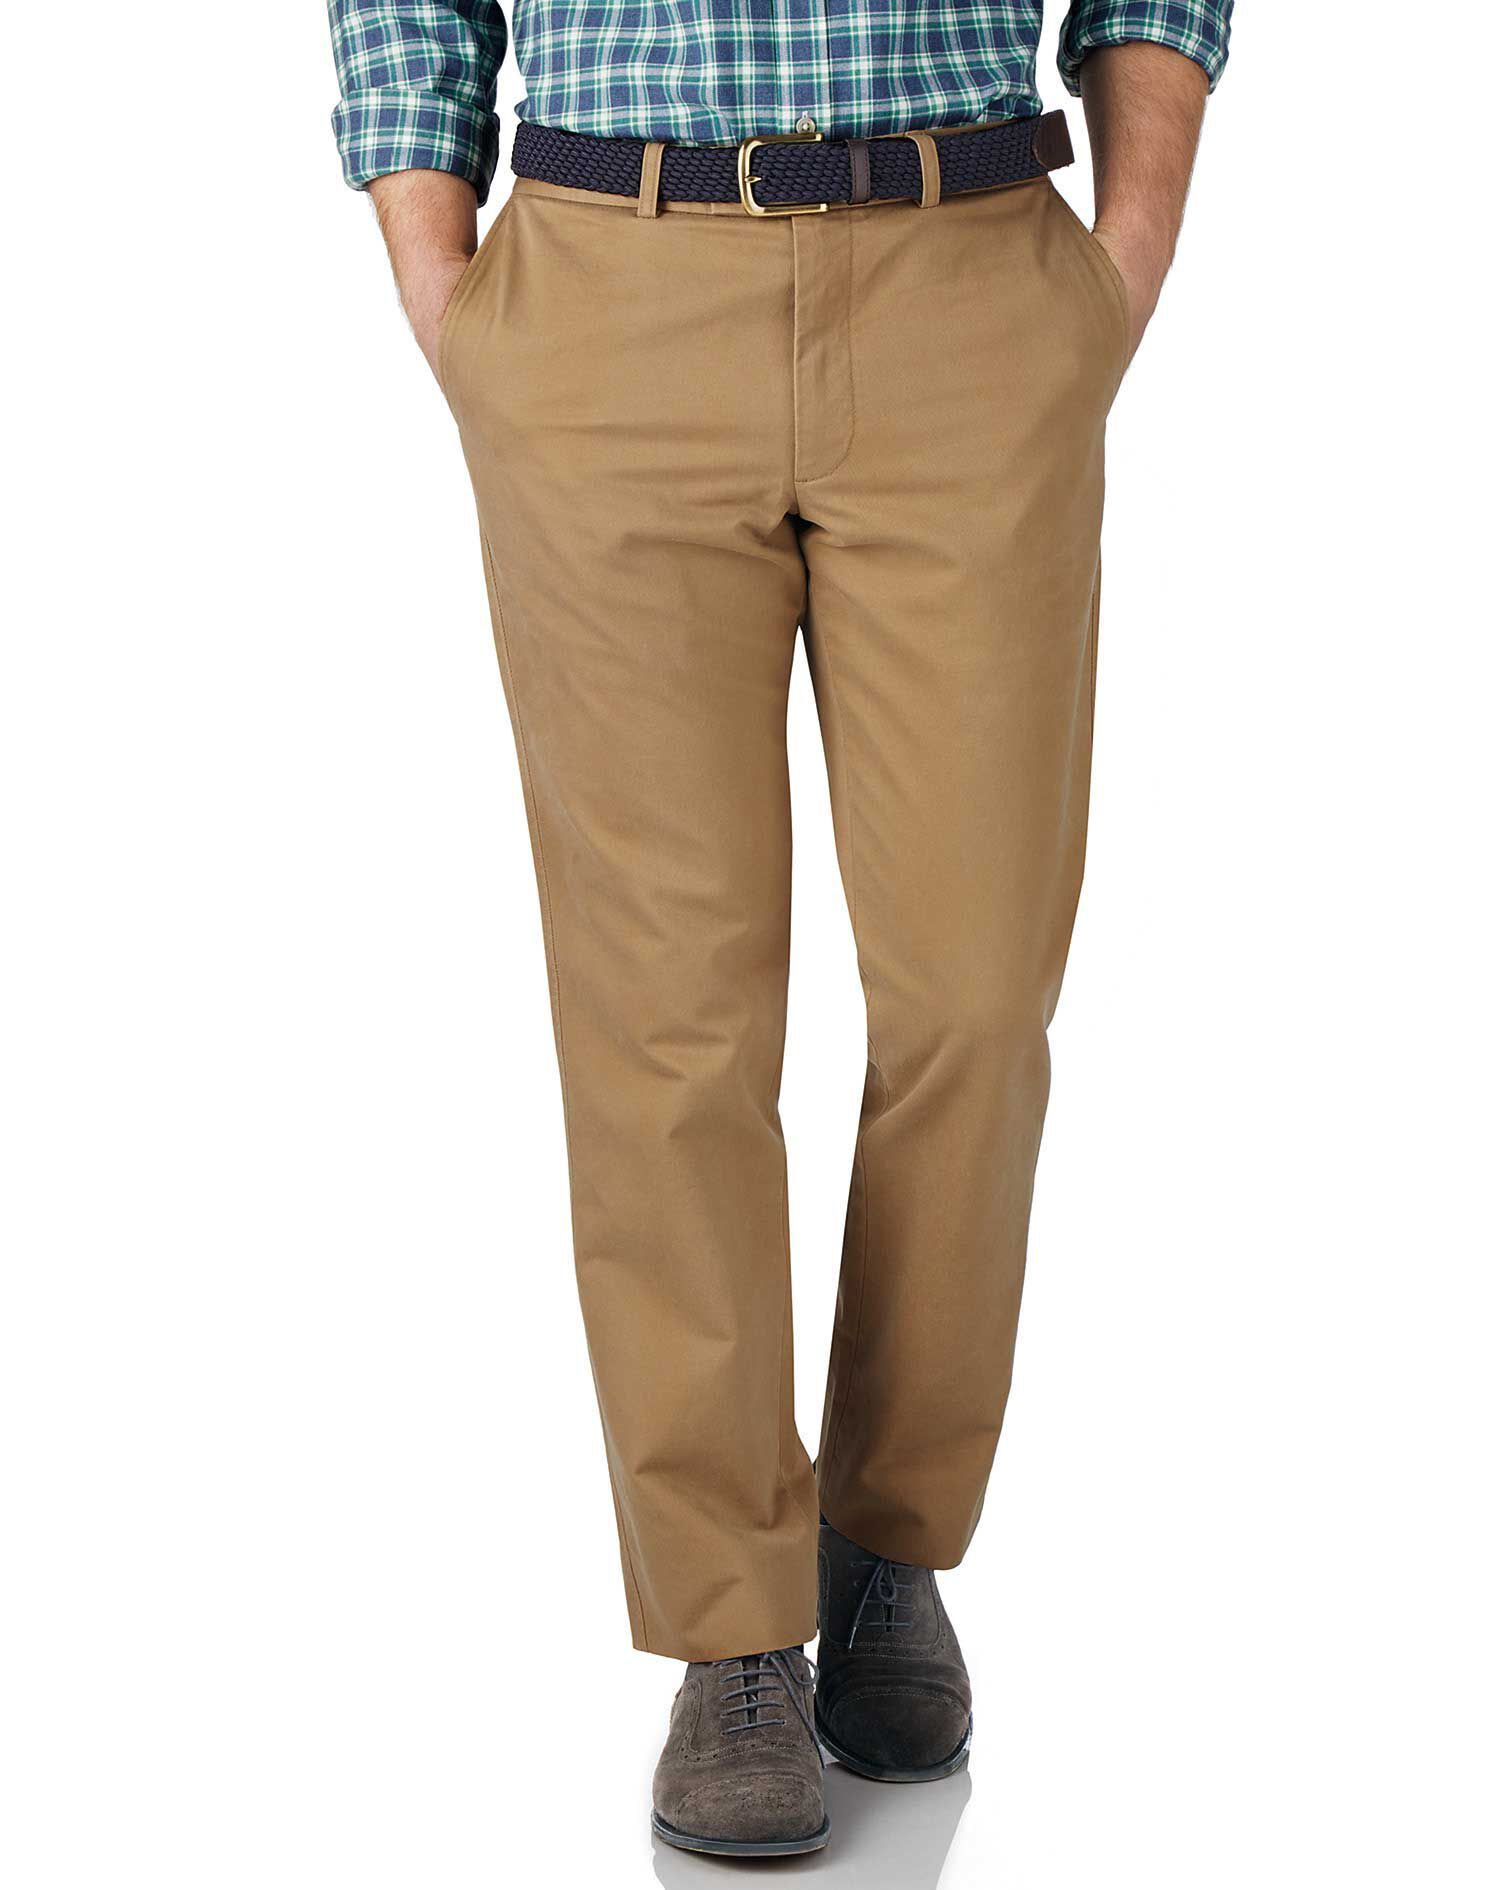 Tan Slim Fit Flat Front Weekend Cotton Chino Trousers Size W30 L32 by Charles Tyrwhitt